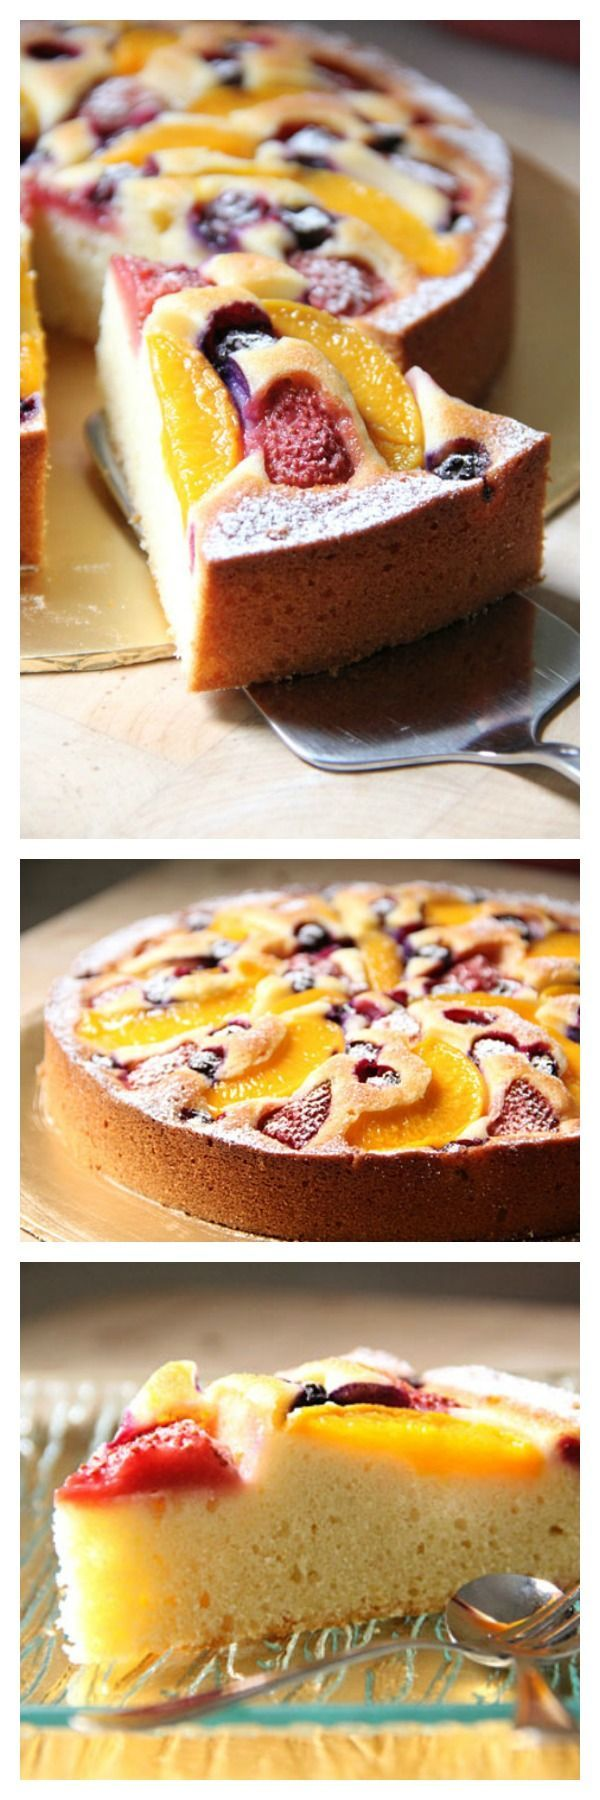 Fruit pastry cake - yummy, juicy fruits on top of a rich and sweet cake. AMAZING recipe that you have to bake | rasamalaysia.com